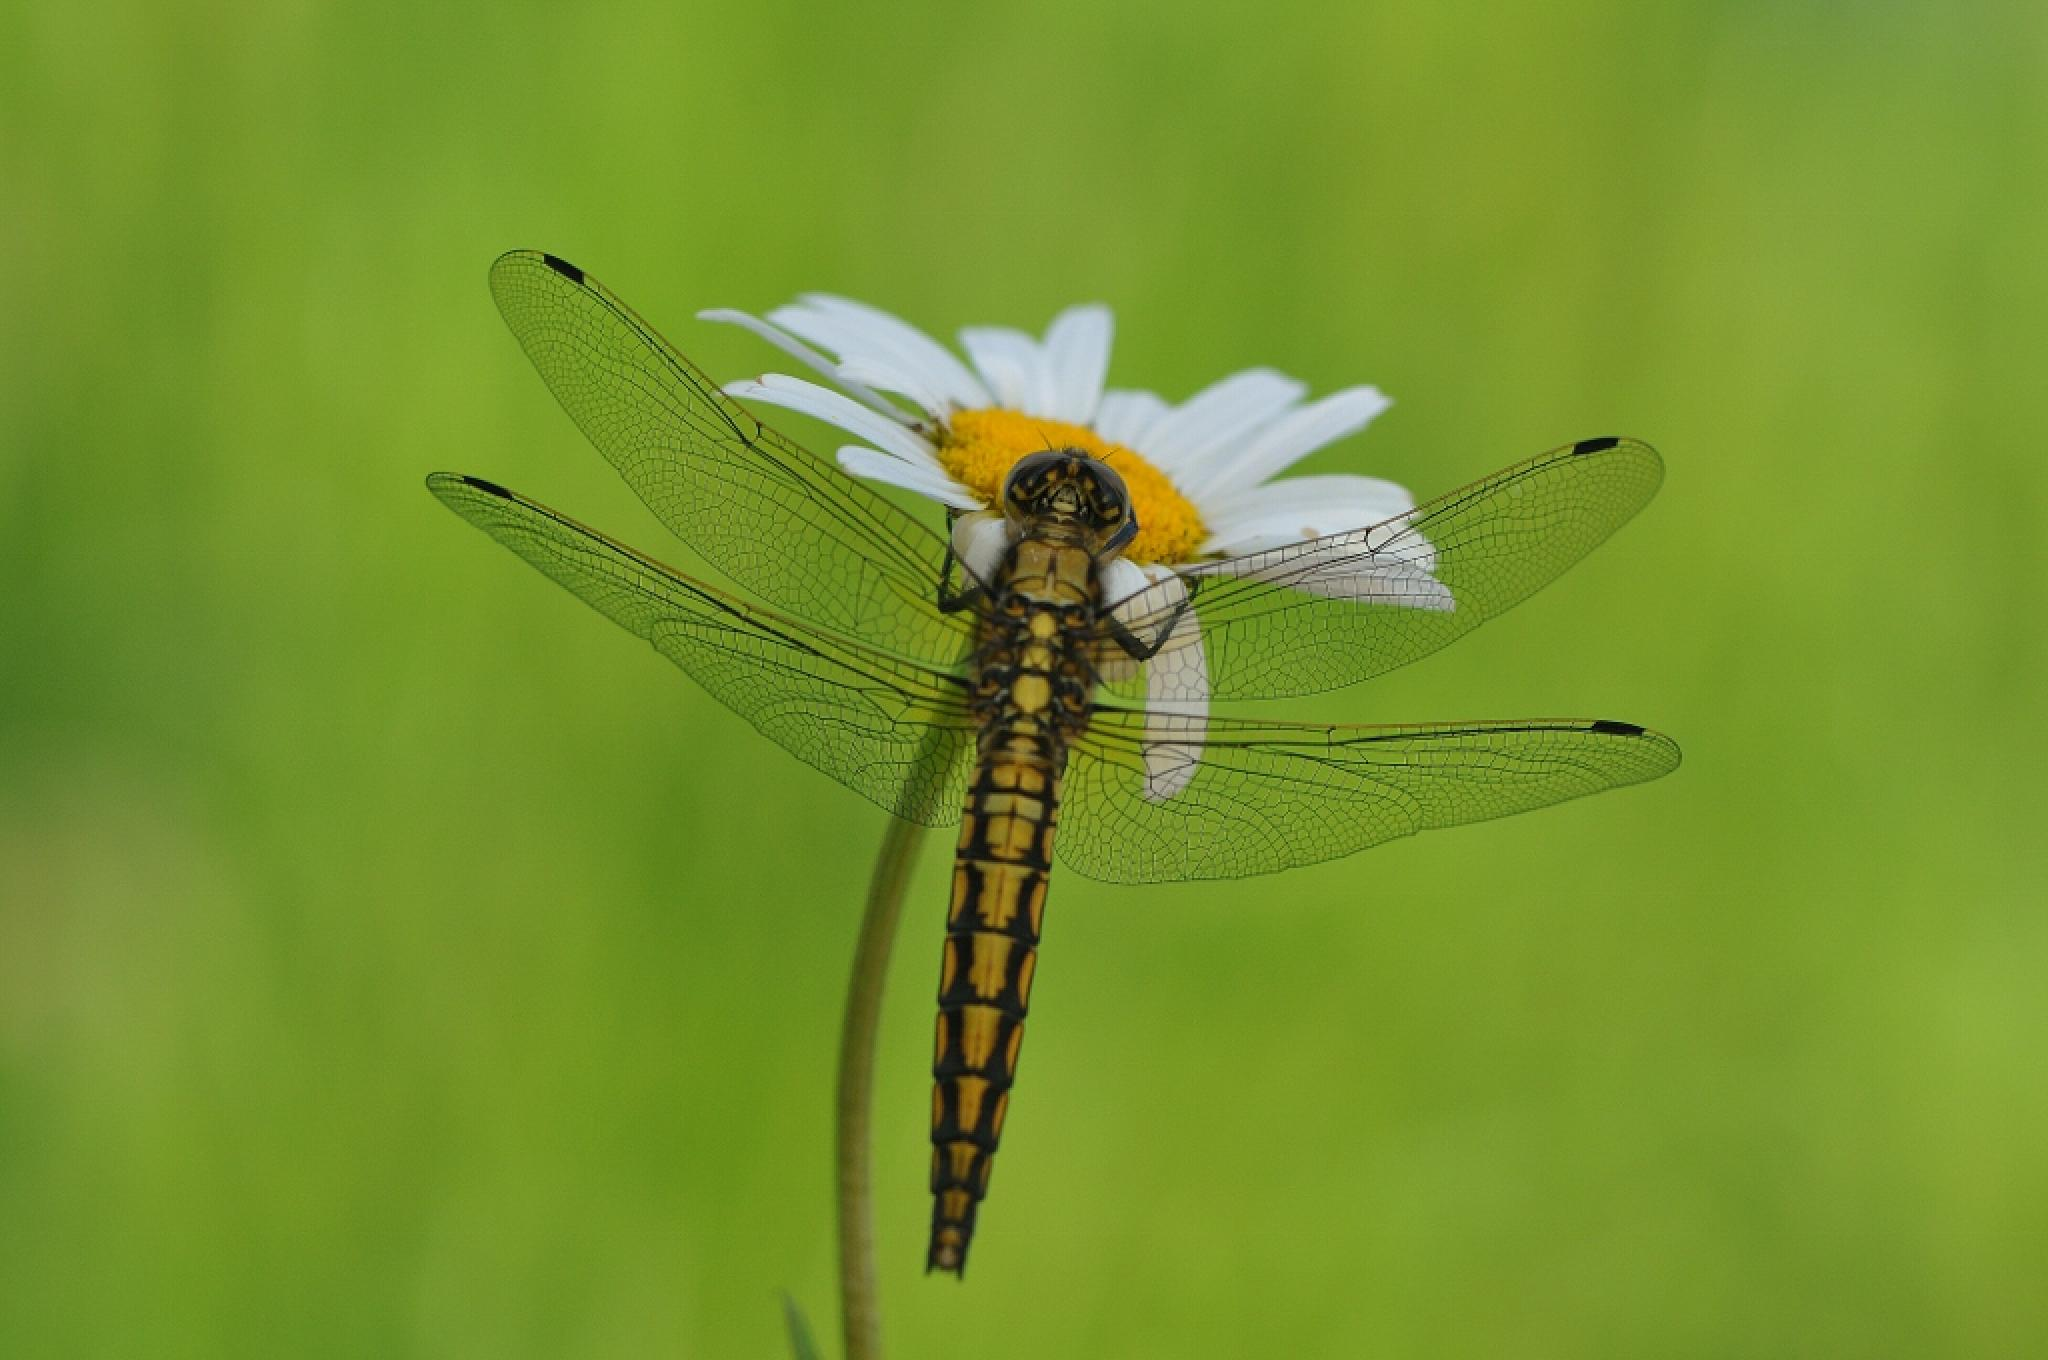 dragonfly by Ruurd Visser